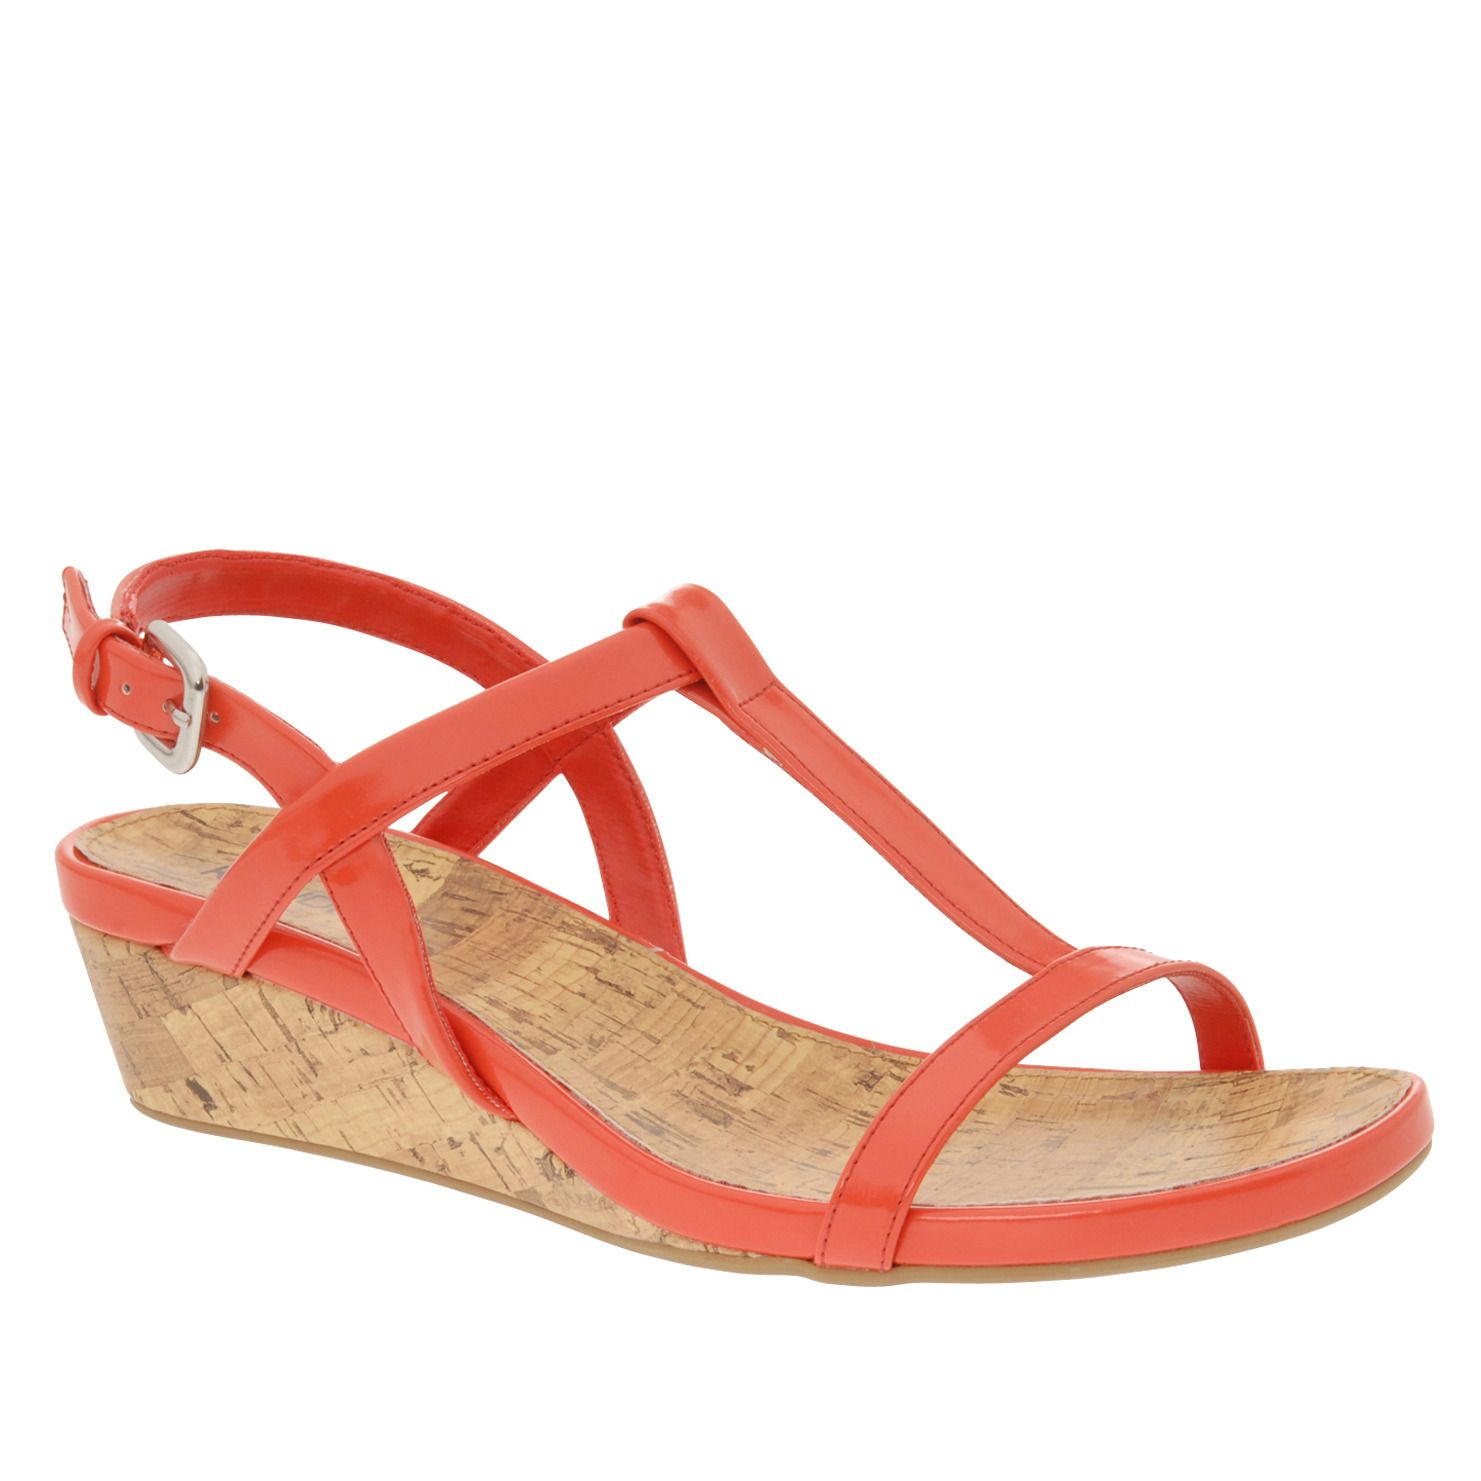 e6ee3f20 BURRIER - women's wedges sandals for sale at GLOBO Shoes. | Sandals ...